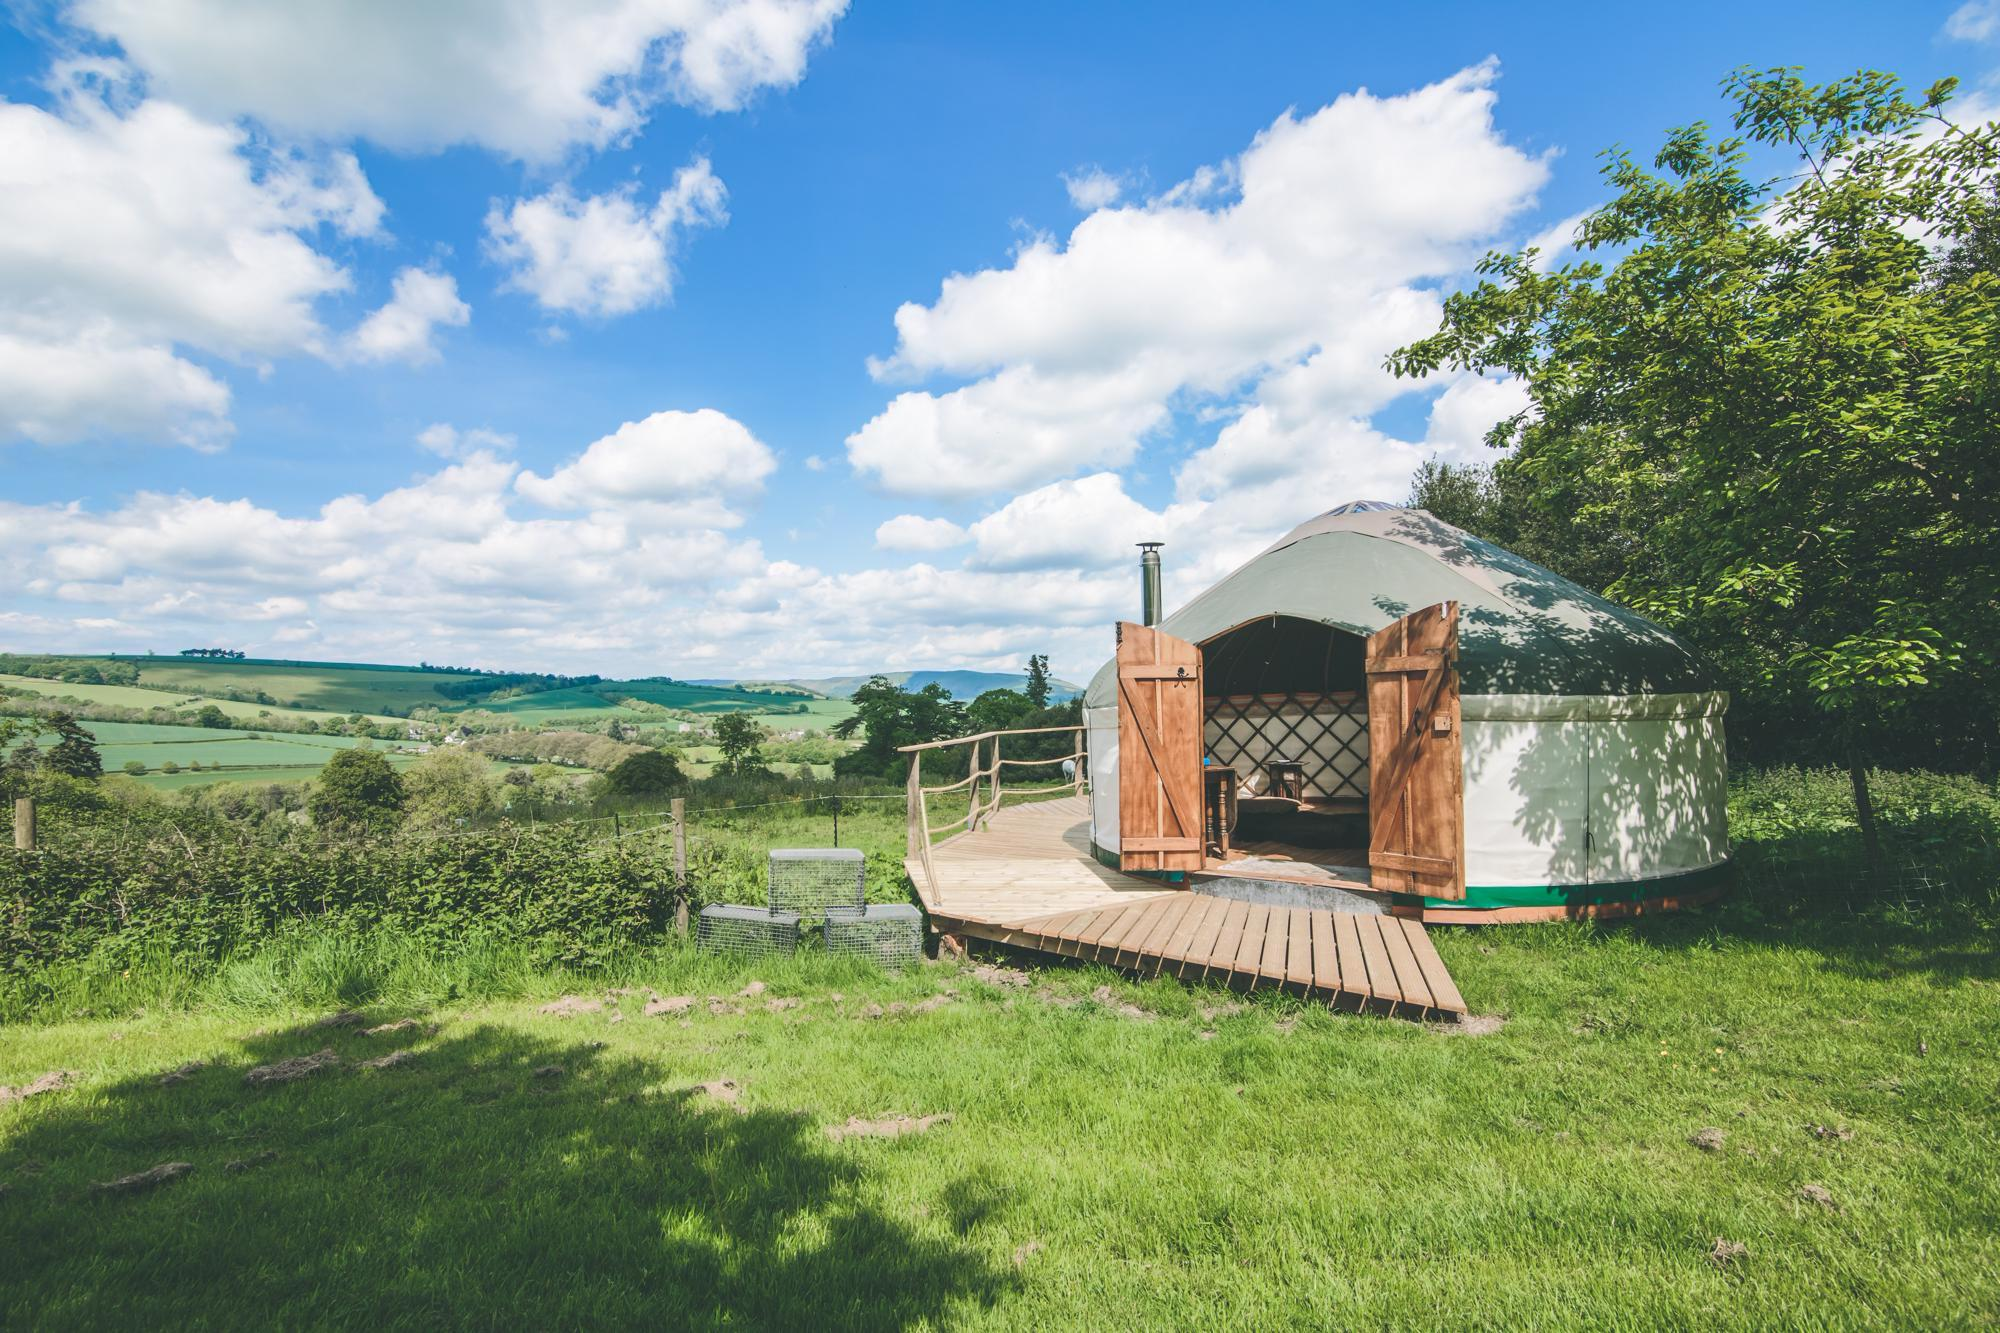 Hotels, Cottages, B&Bs & Glamping in Shropshire - Cool Places to Stay in the UK